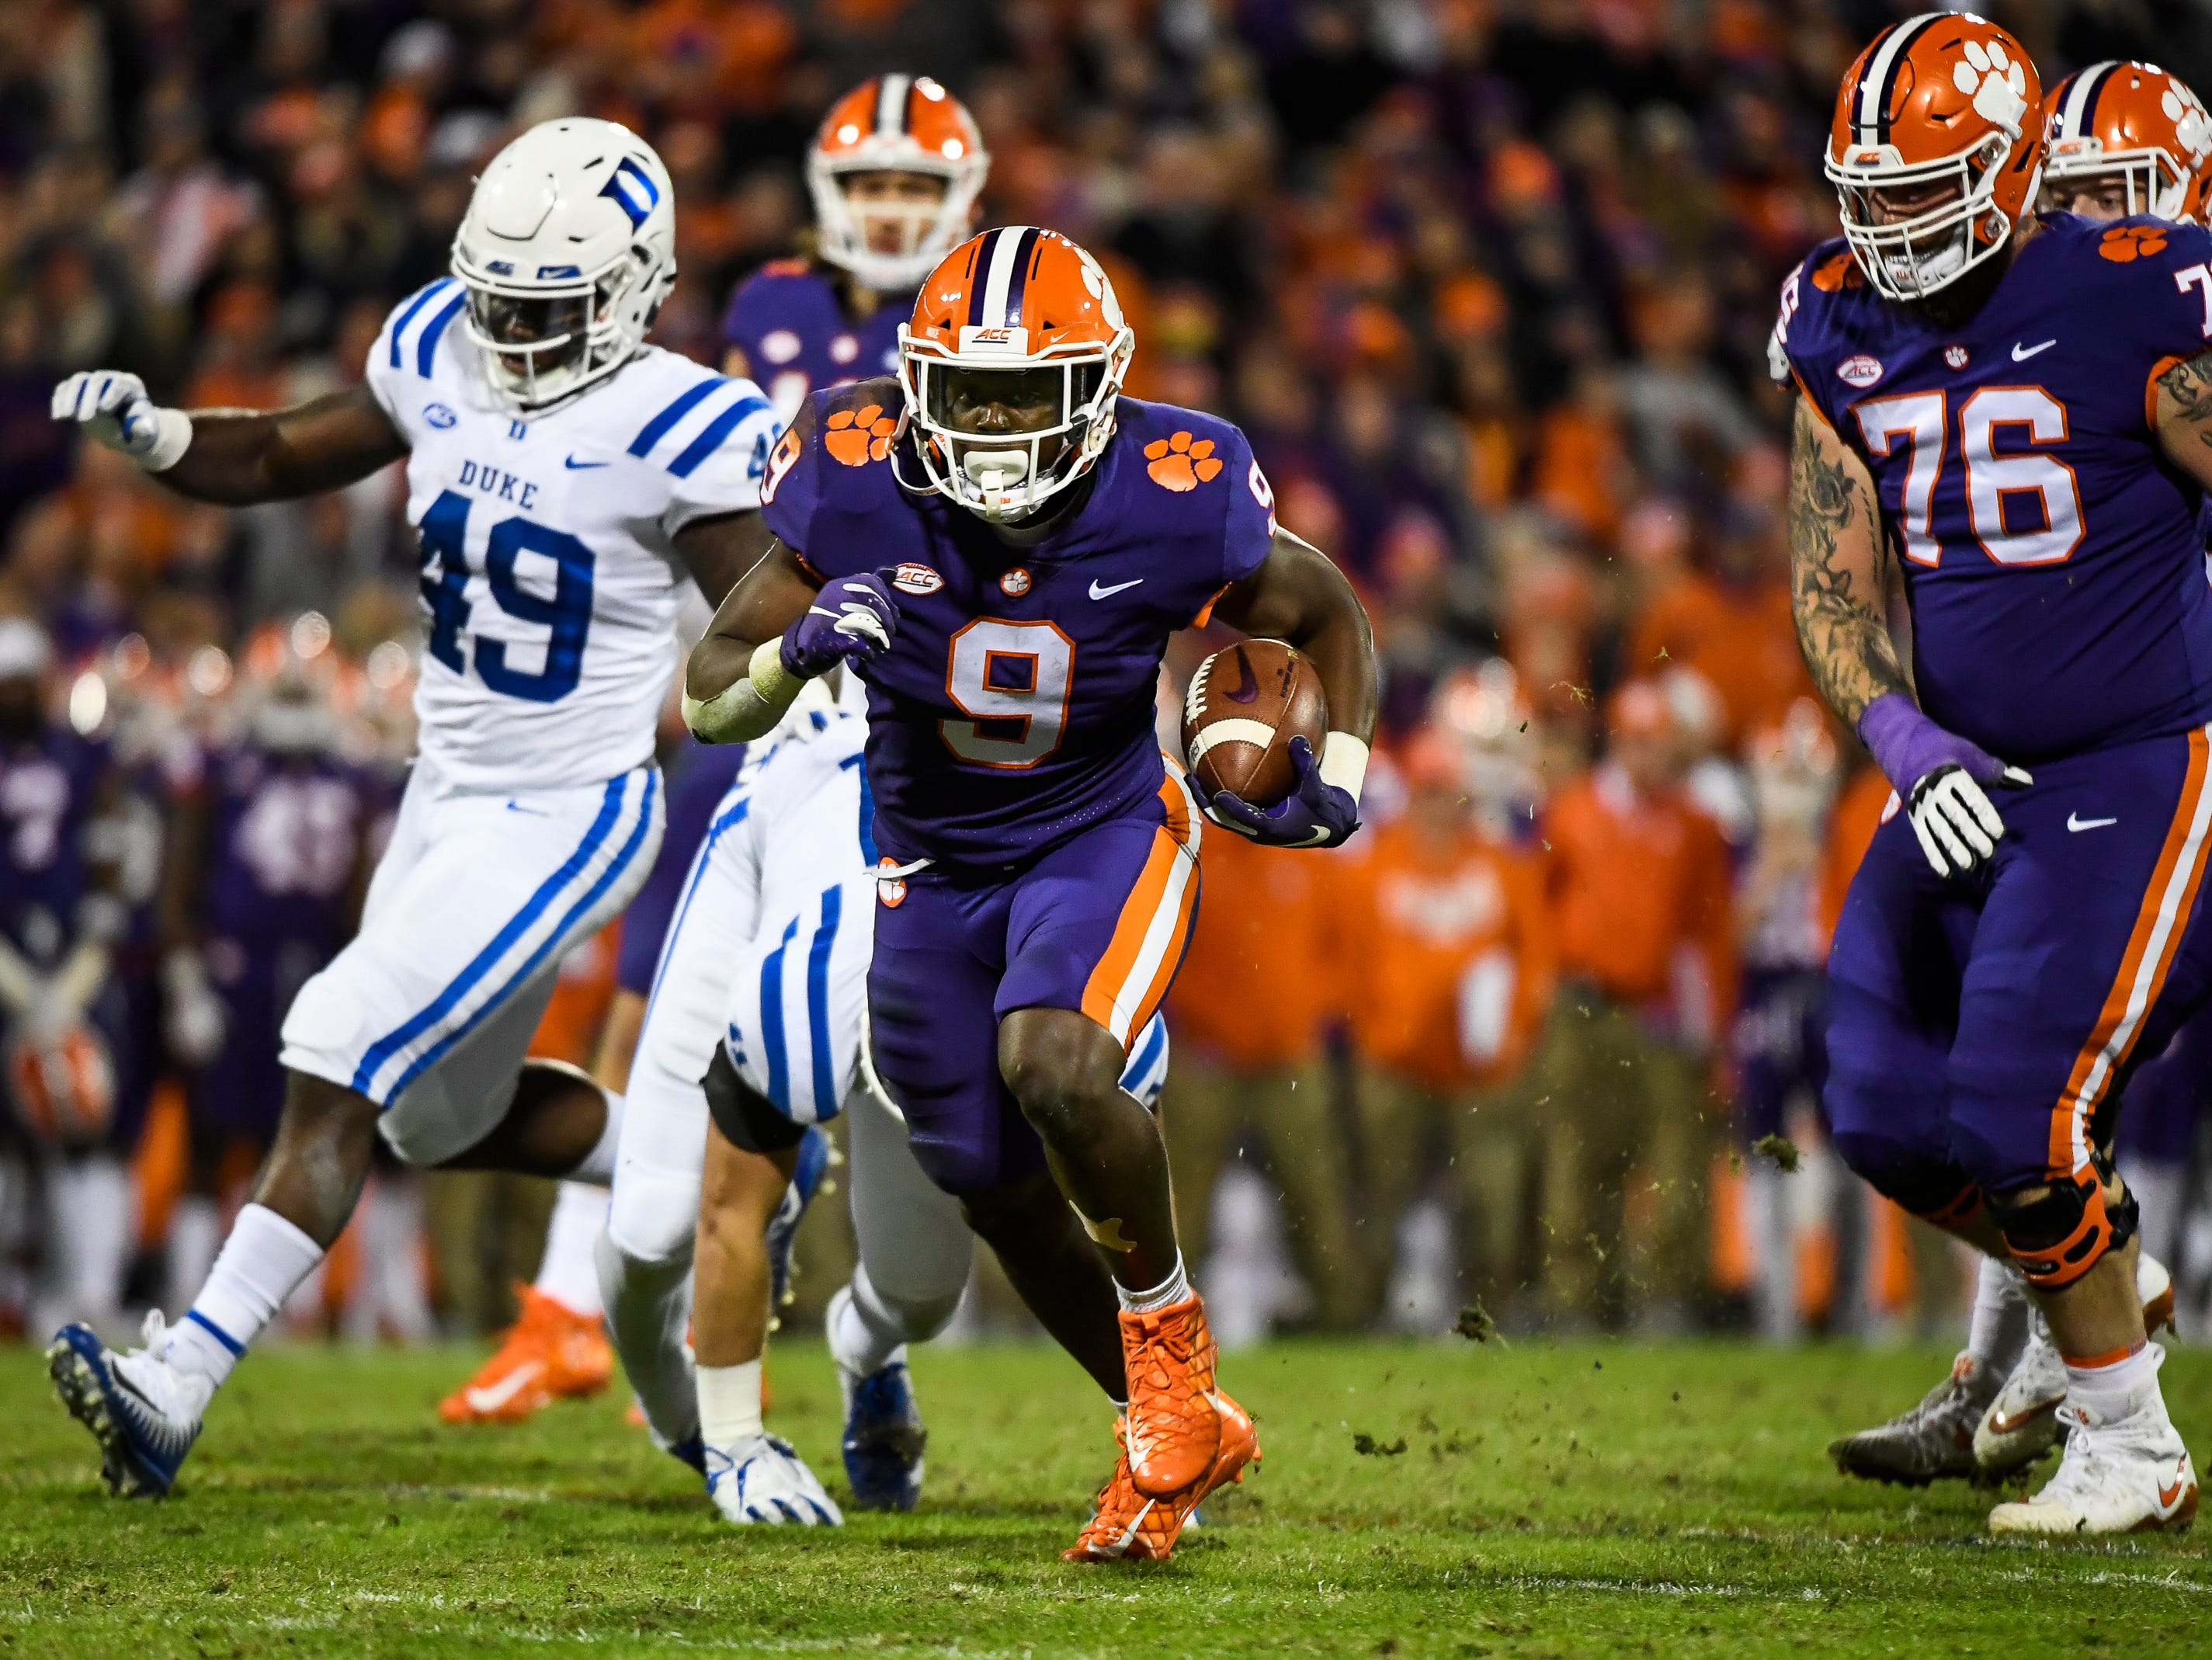 Clemson running back Travis Etienne (9) attempts to advance during their game against Duke at Memorial Stadium on Friday, Nov. 17, 2018.